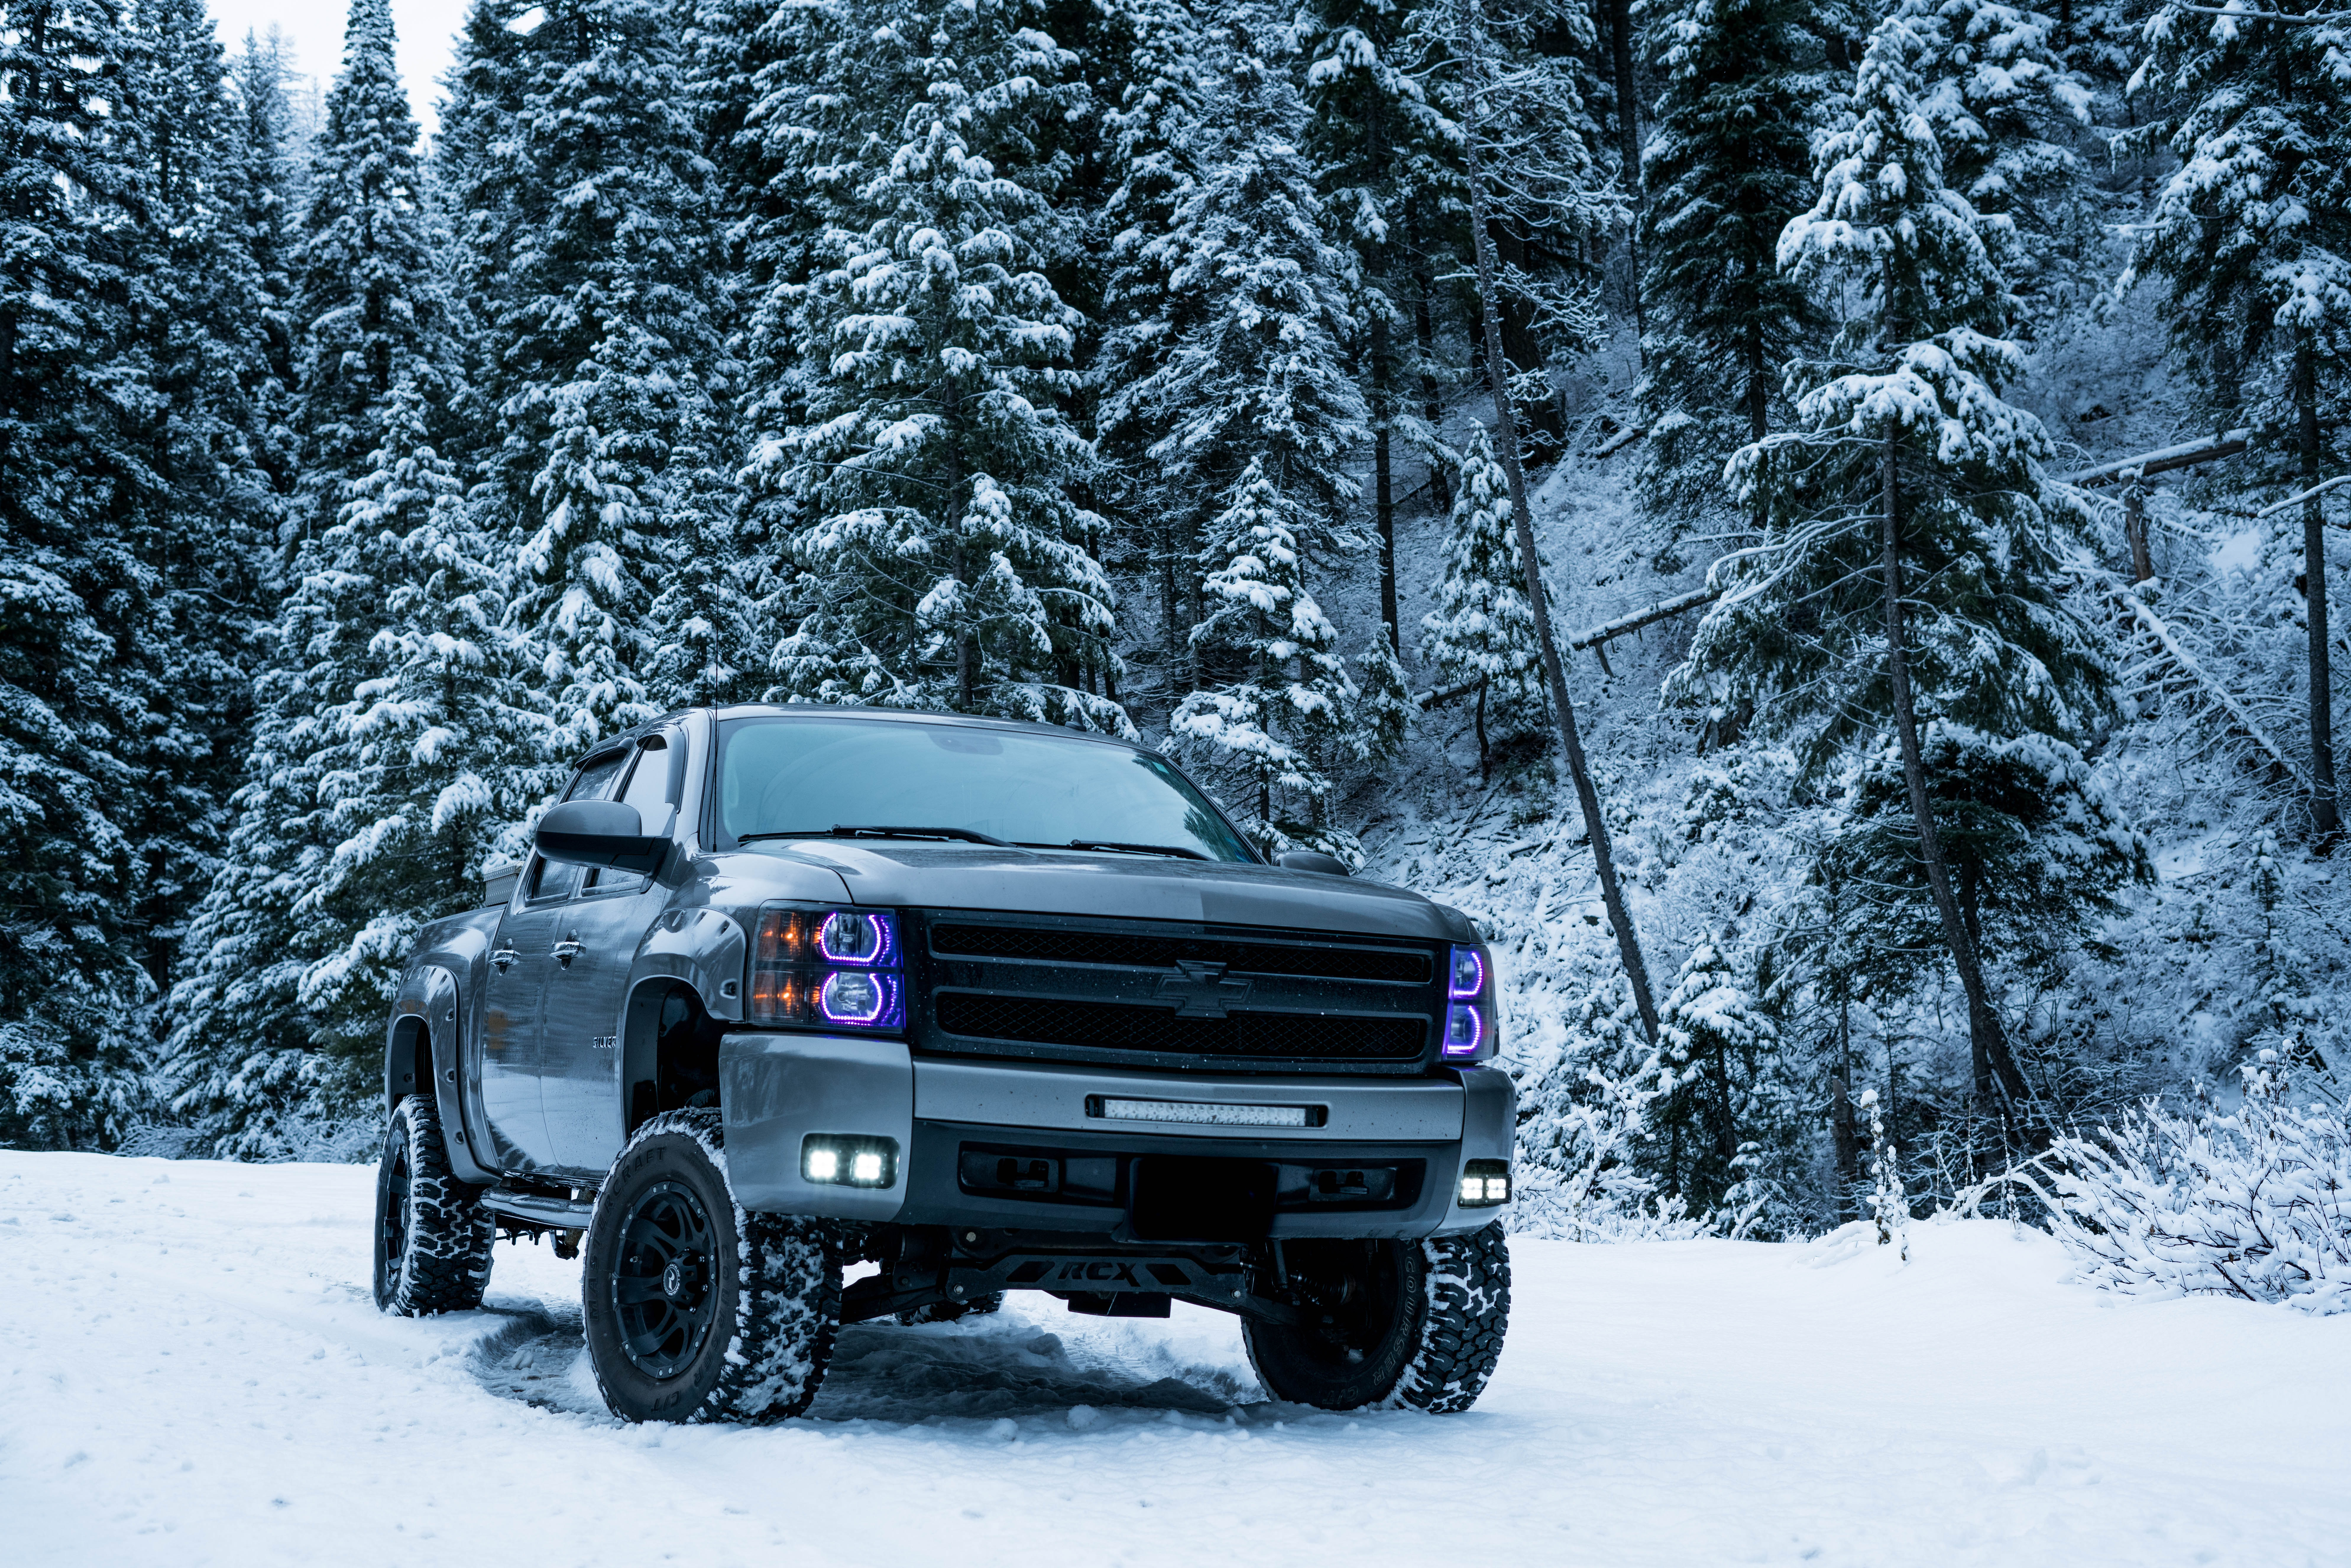 Pickup Truck in the Snow